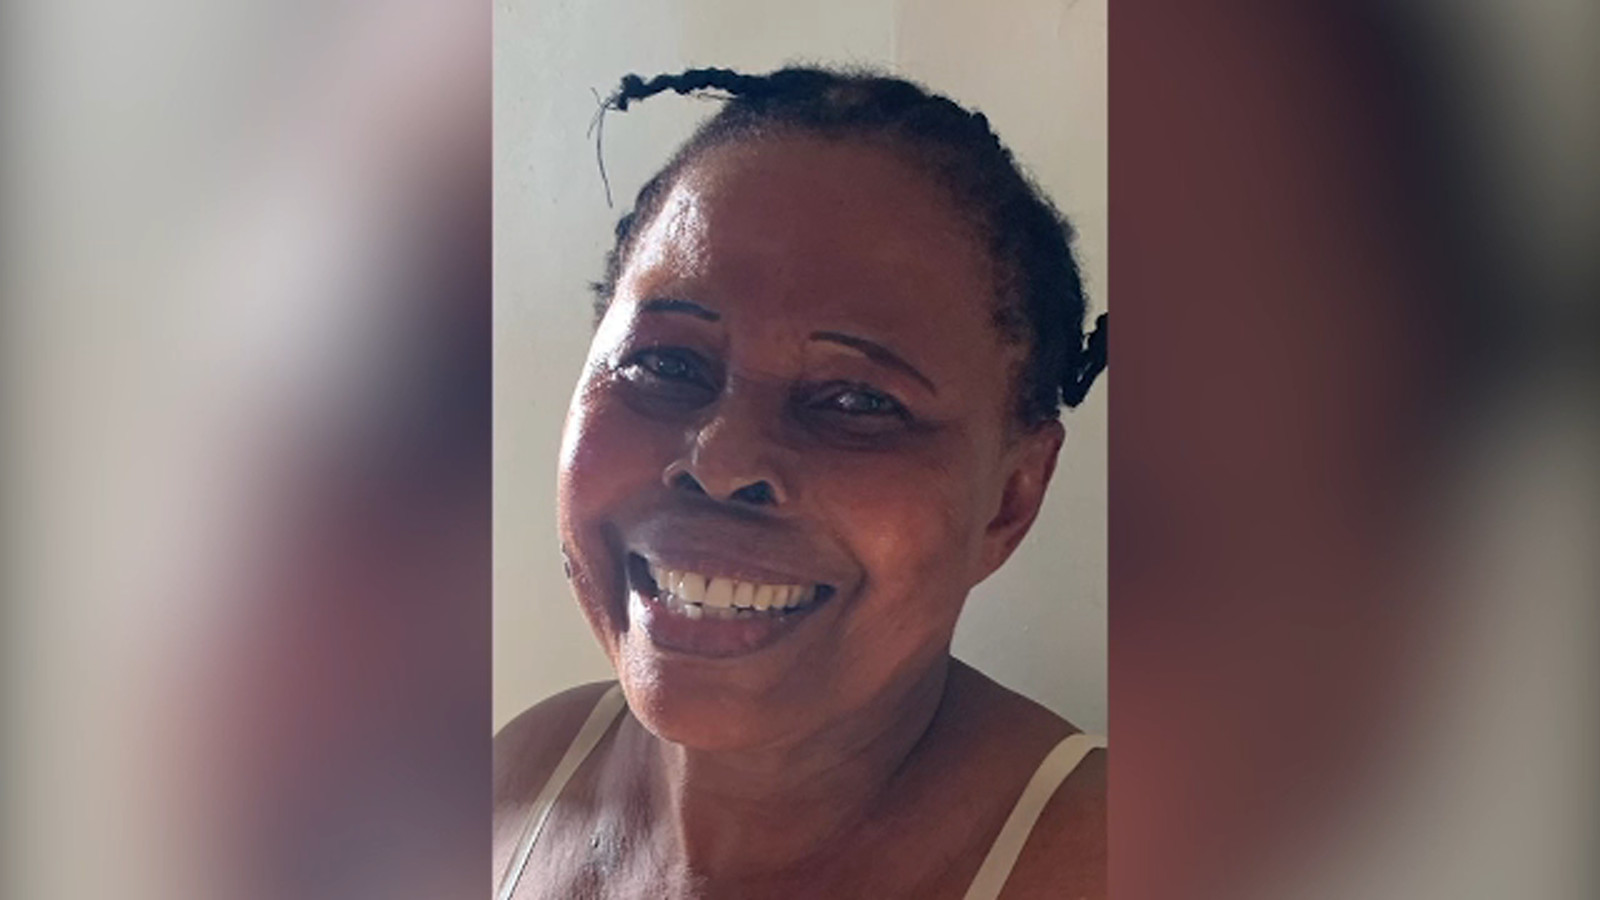 71-year-old Ghanaian nanny arrested in US after being caught on camera hitting and kicking a baby under her care (video)